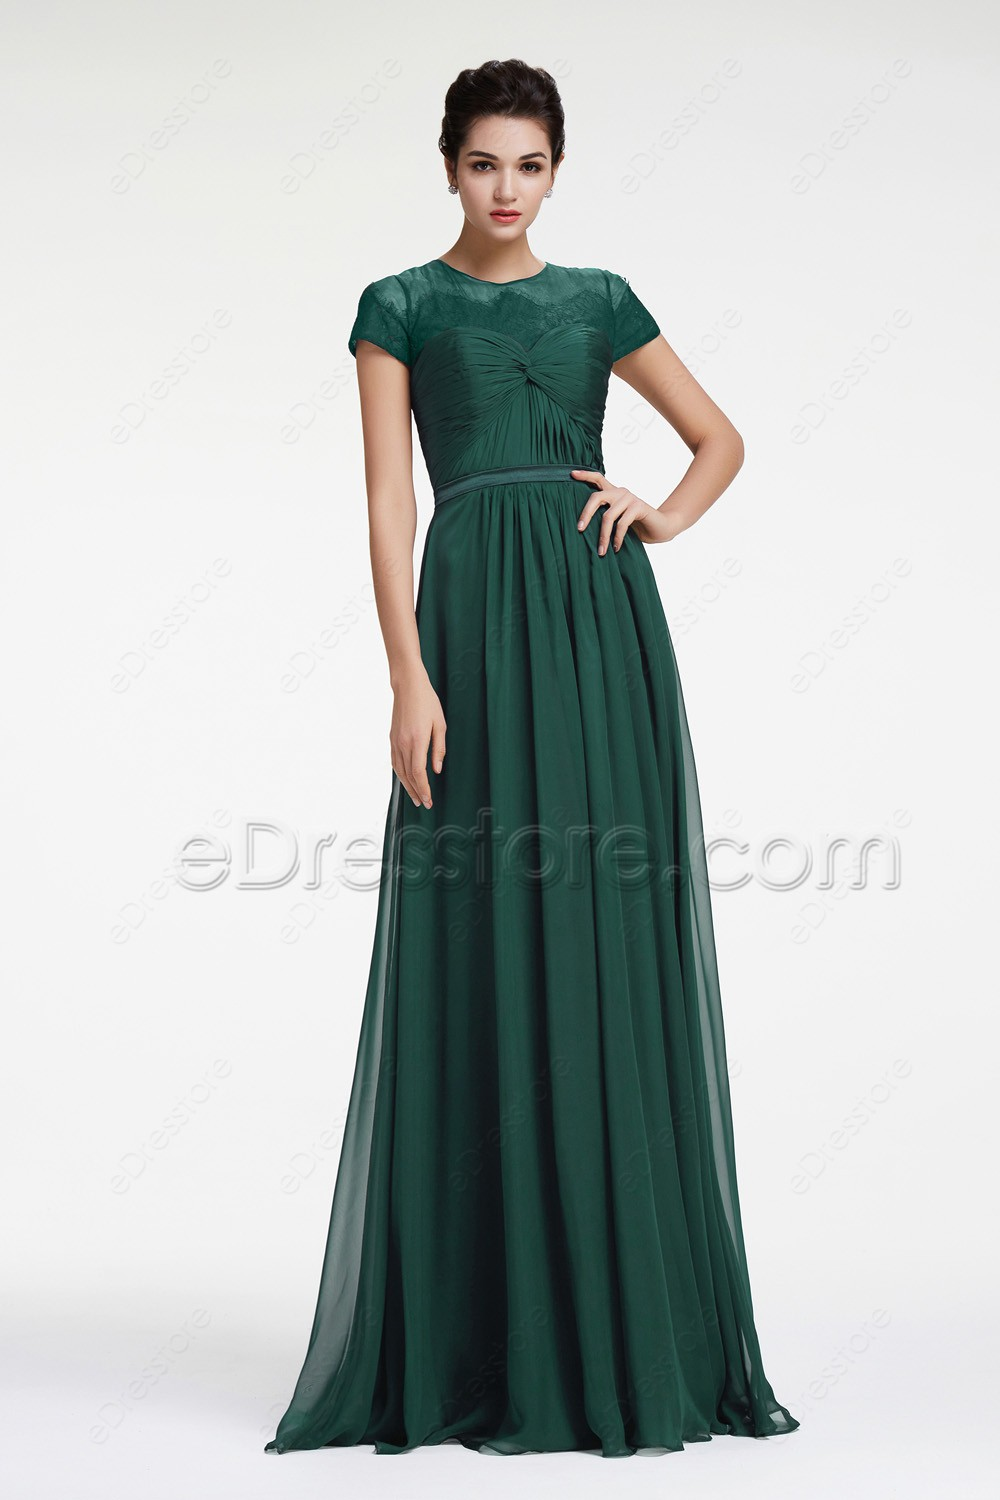 Forest Green Modest Evening Dress With Sleeves Plus Size